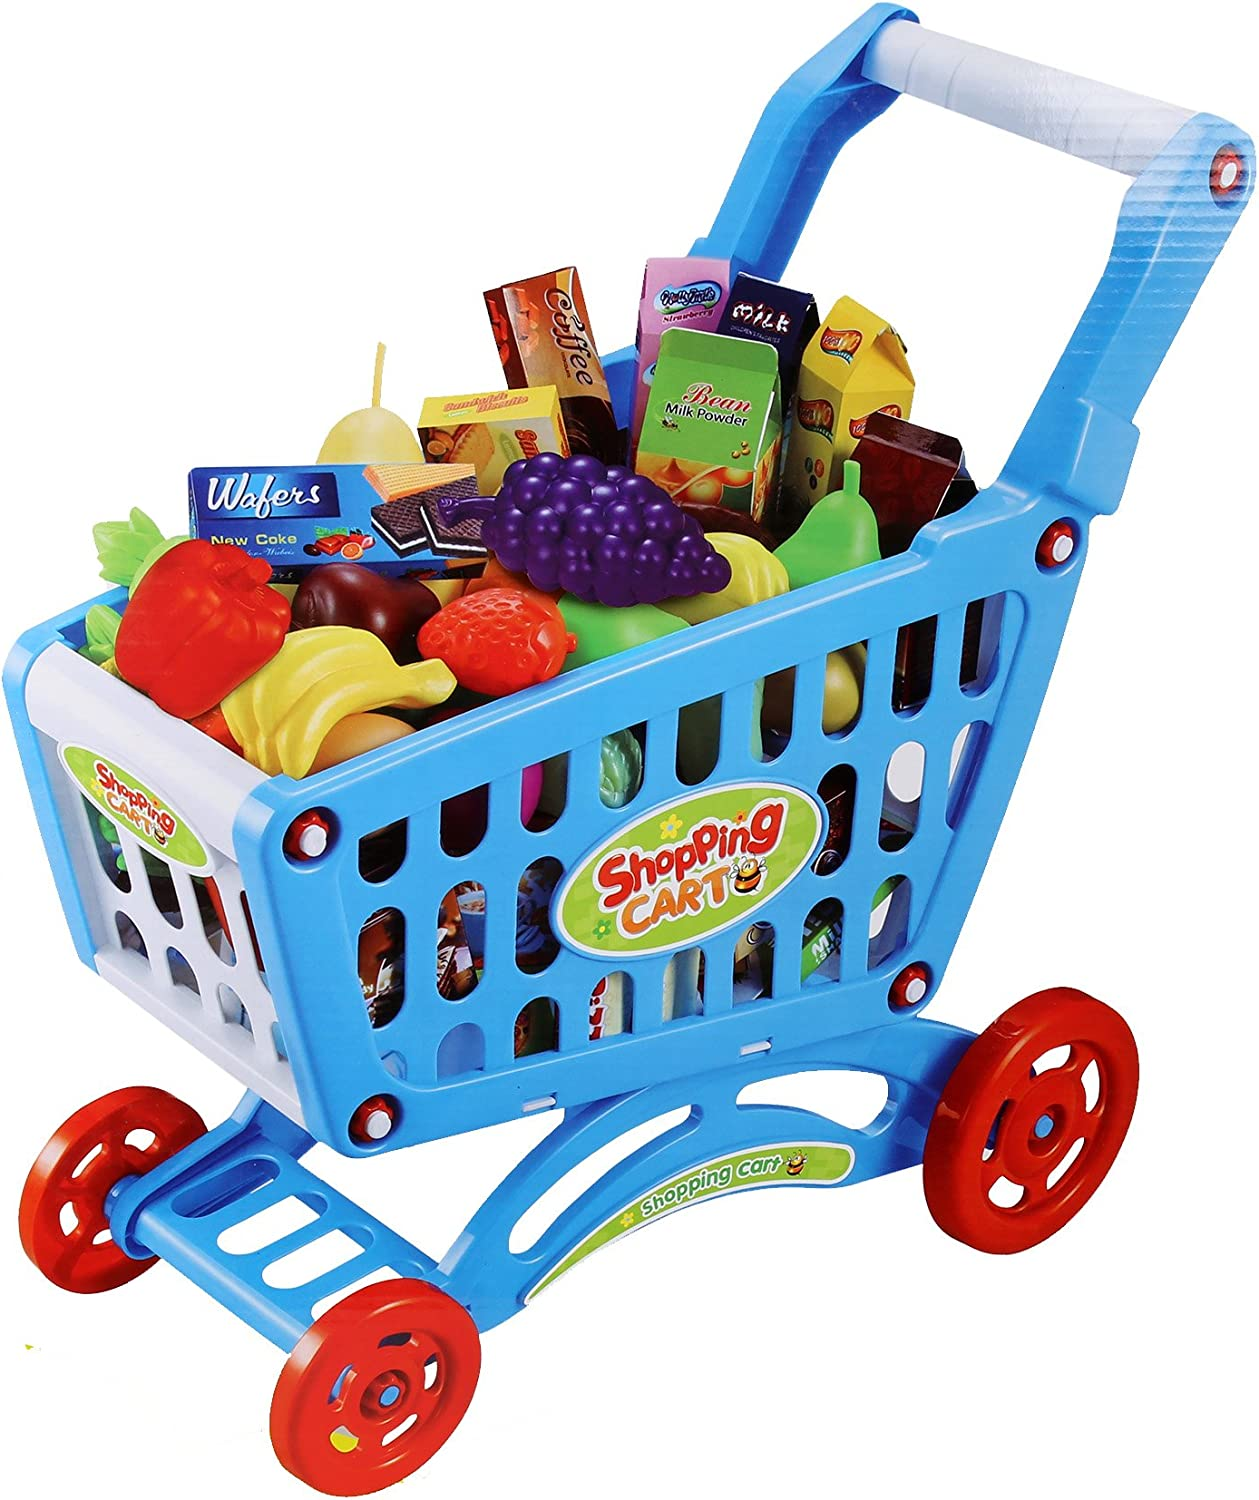 Ibobby, Toy Grocery Shopping Cart Set, 16.5 x 18.5 inches, Multicolor